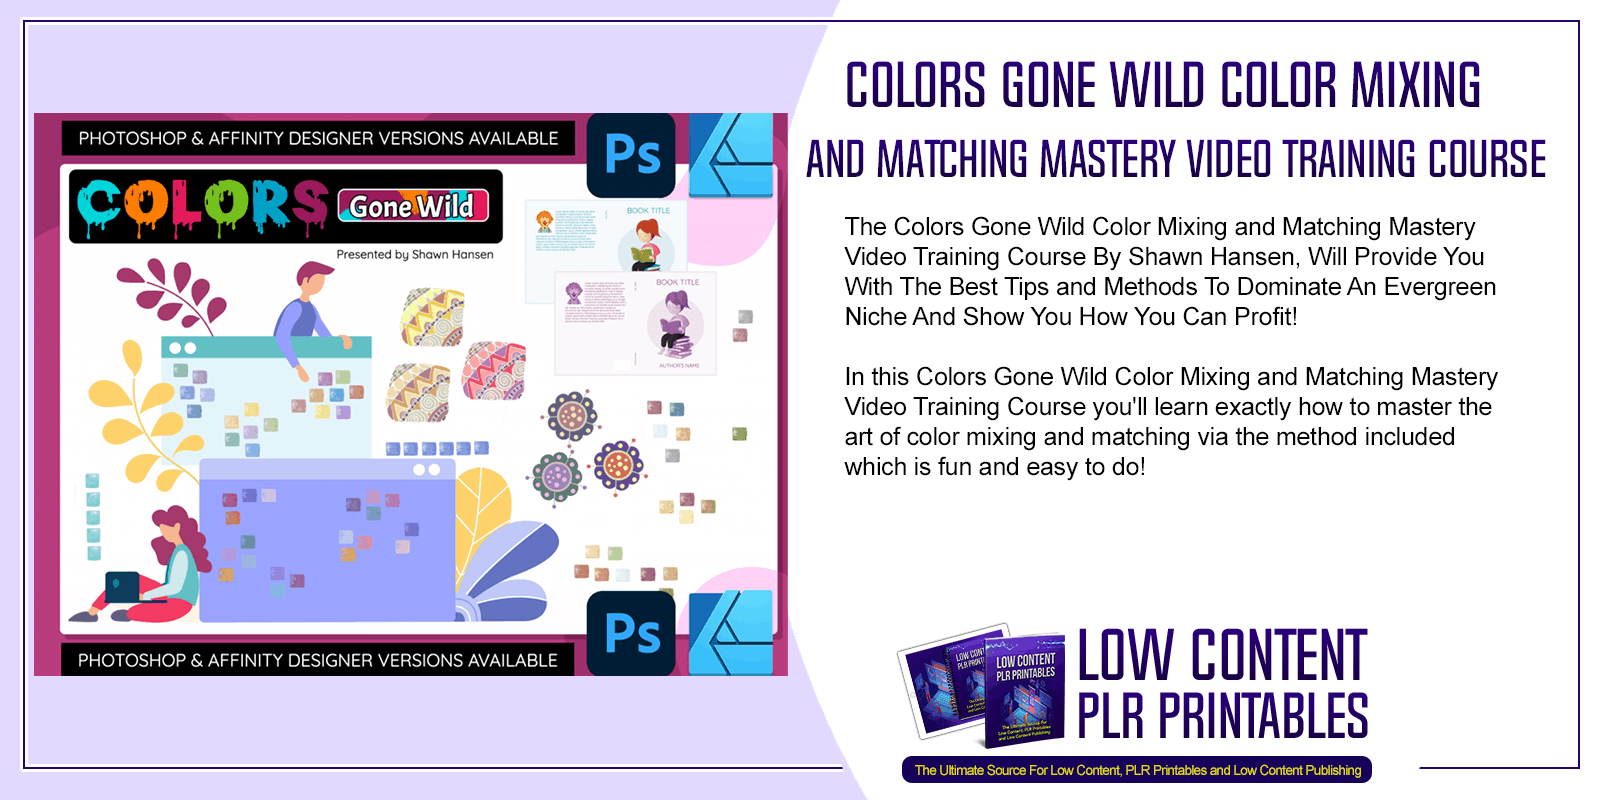 Colors Gone Wild Color Mixing and Matching Mastery Video Training Course